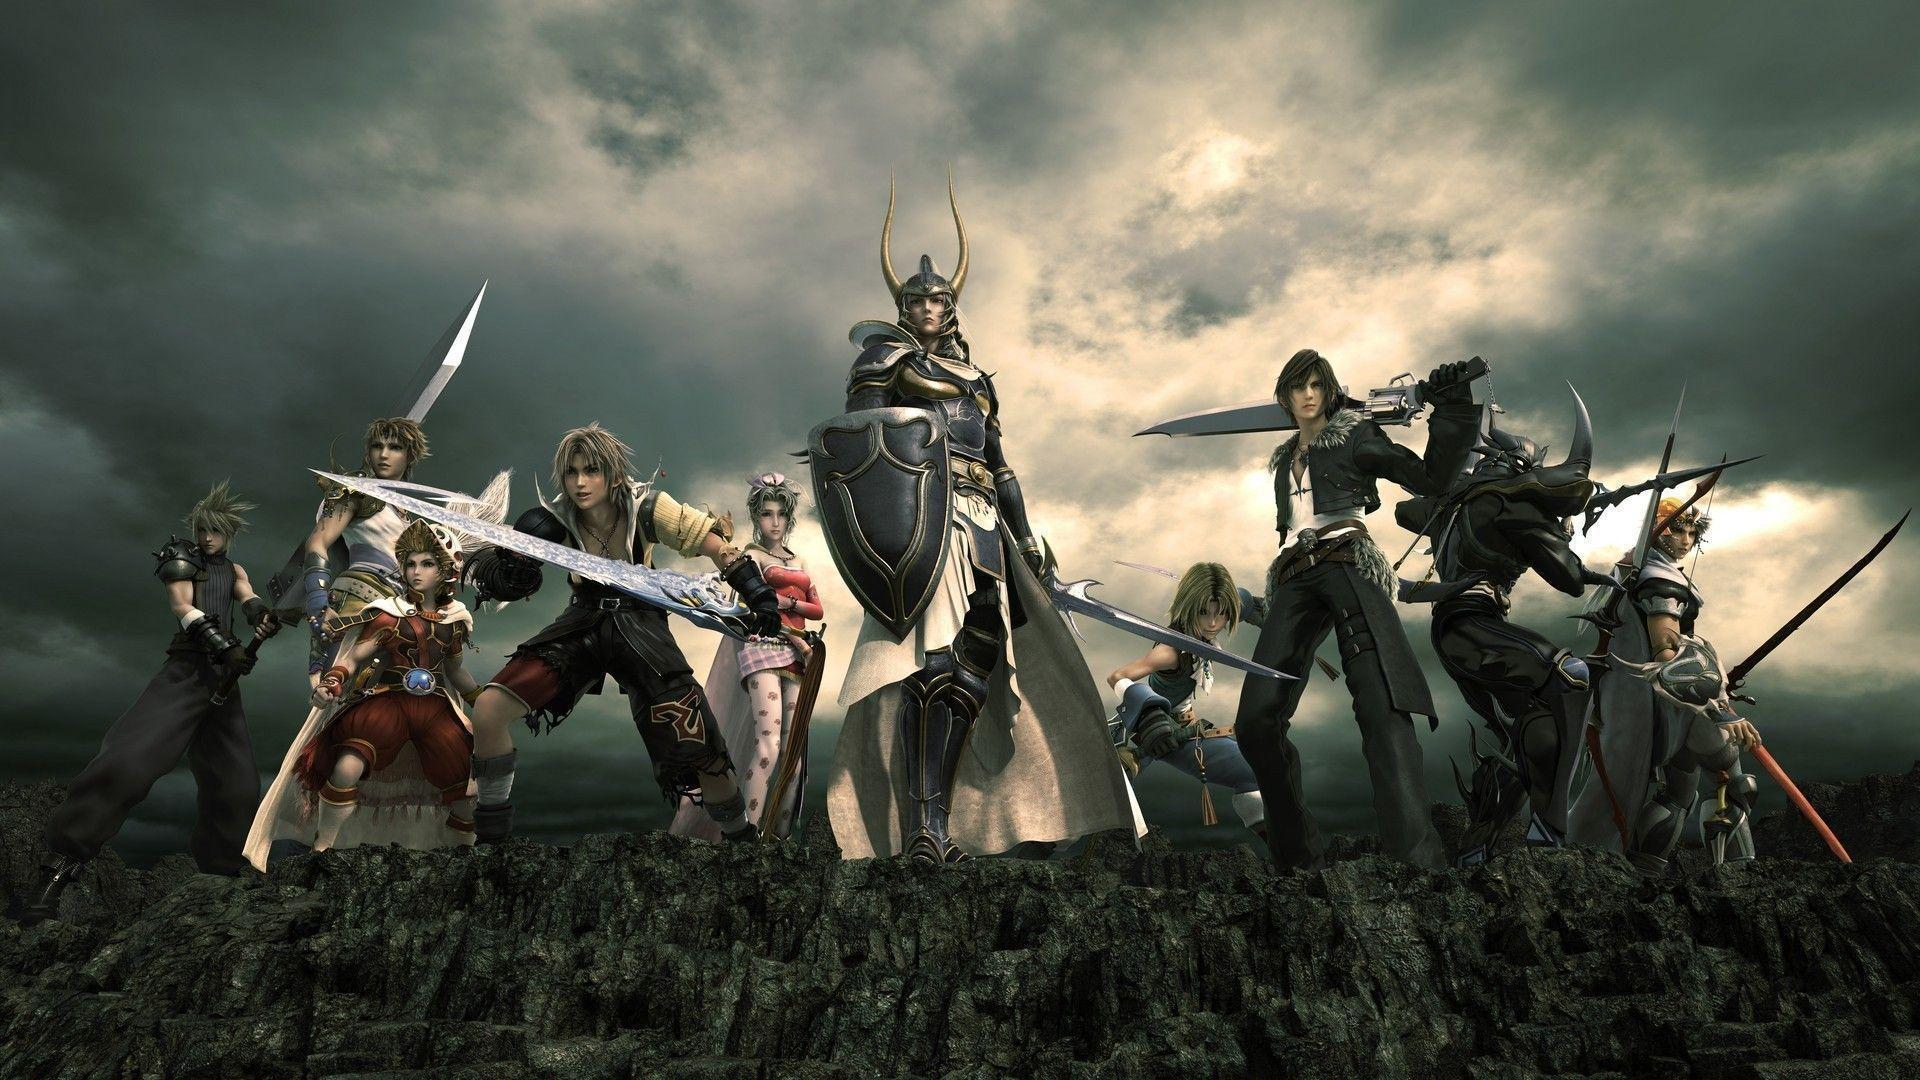 Dissidia Final Fantasy Wallpapers #